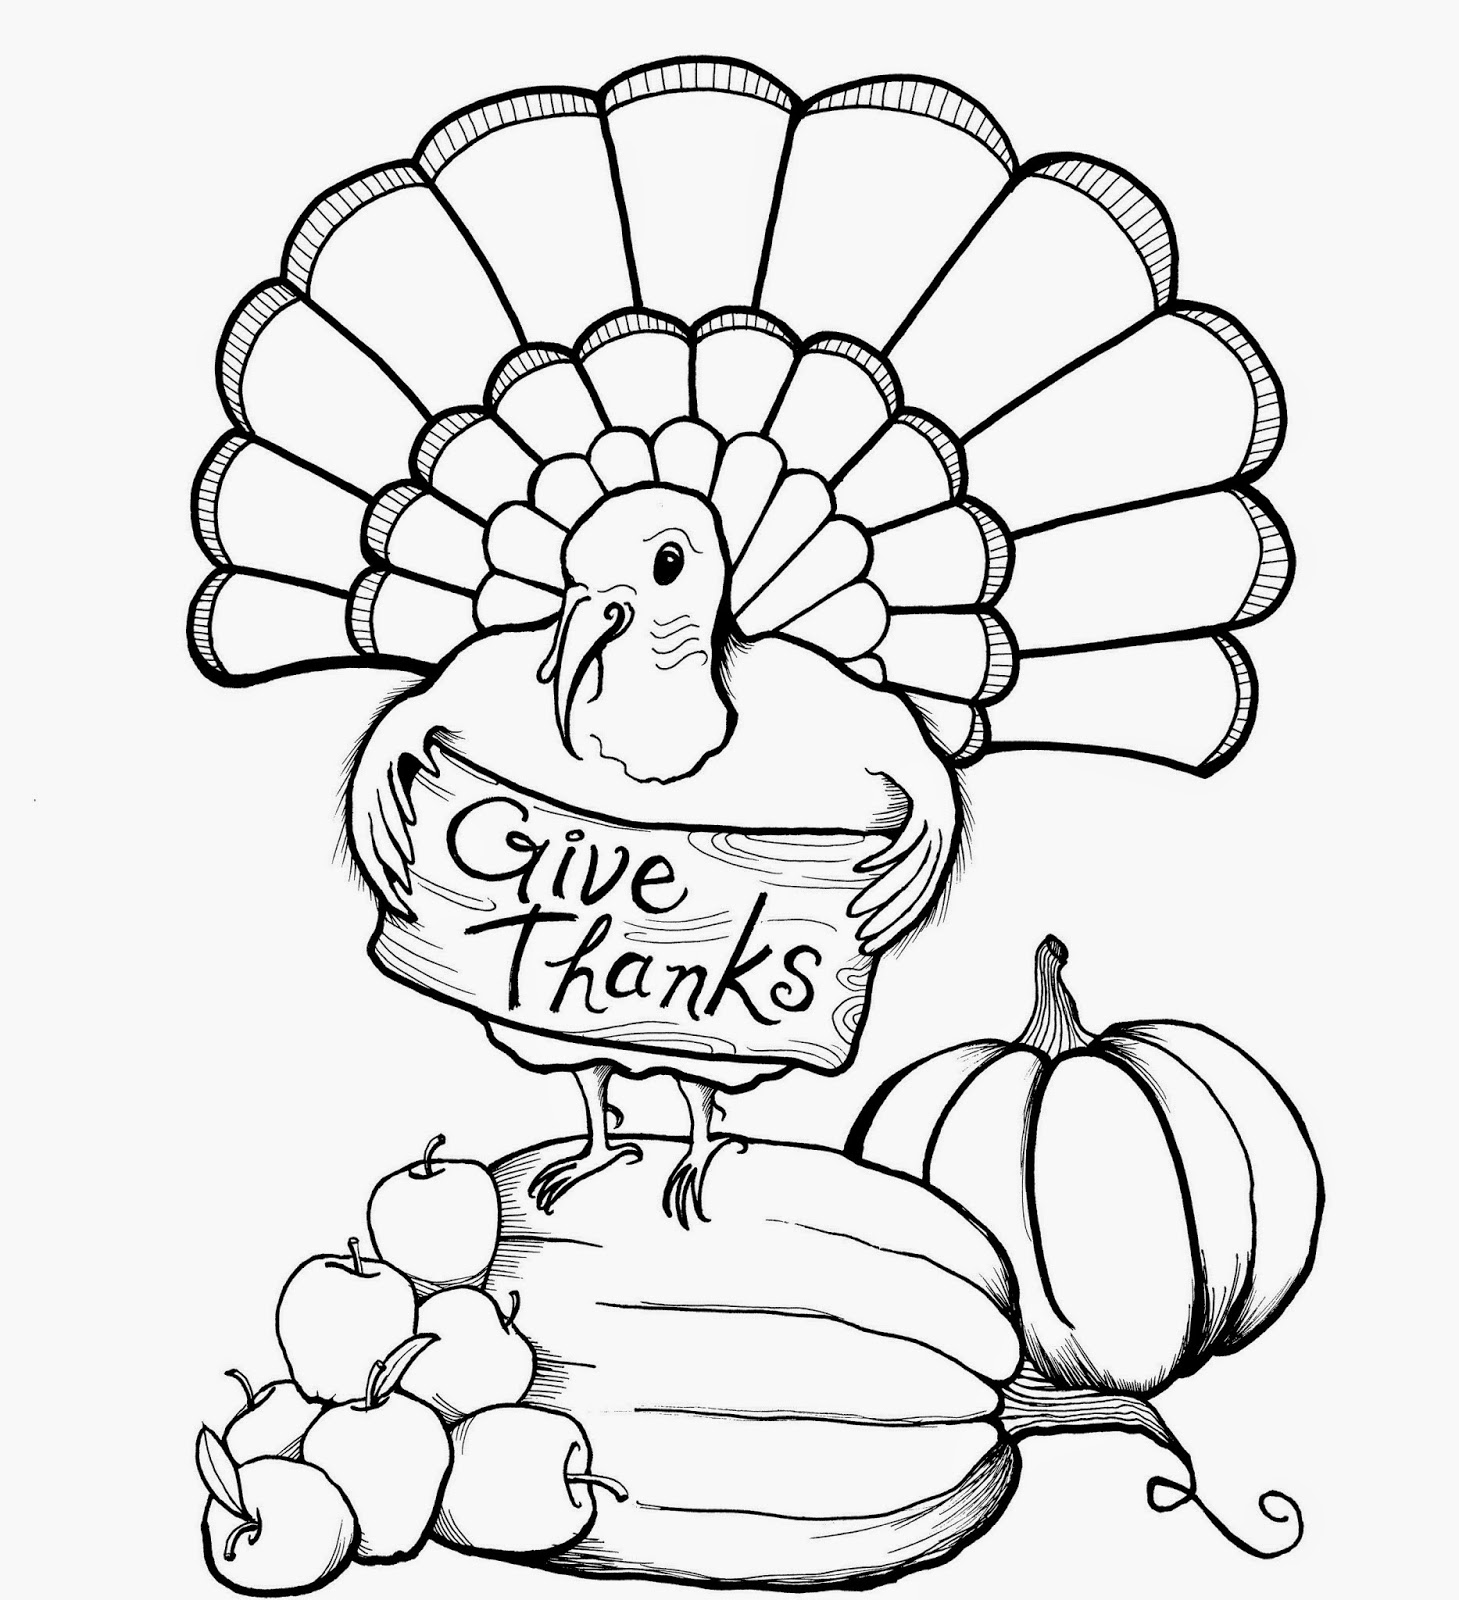 turky coloring pages 4 kids - photo#40